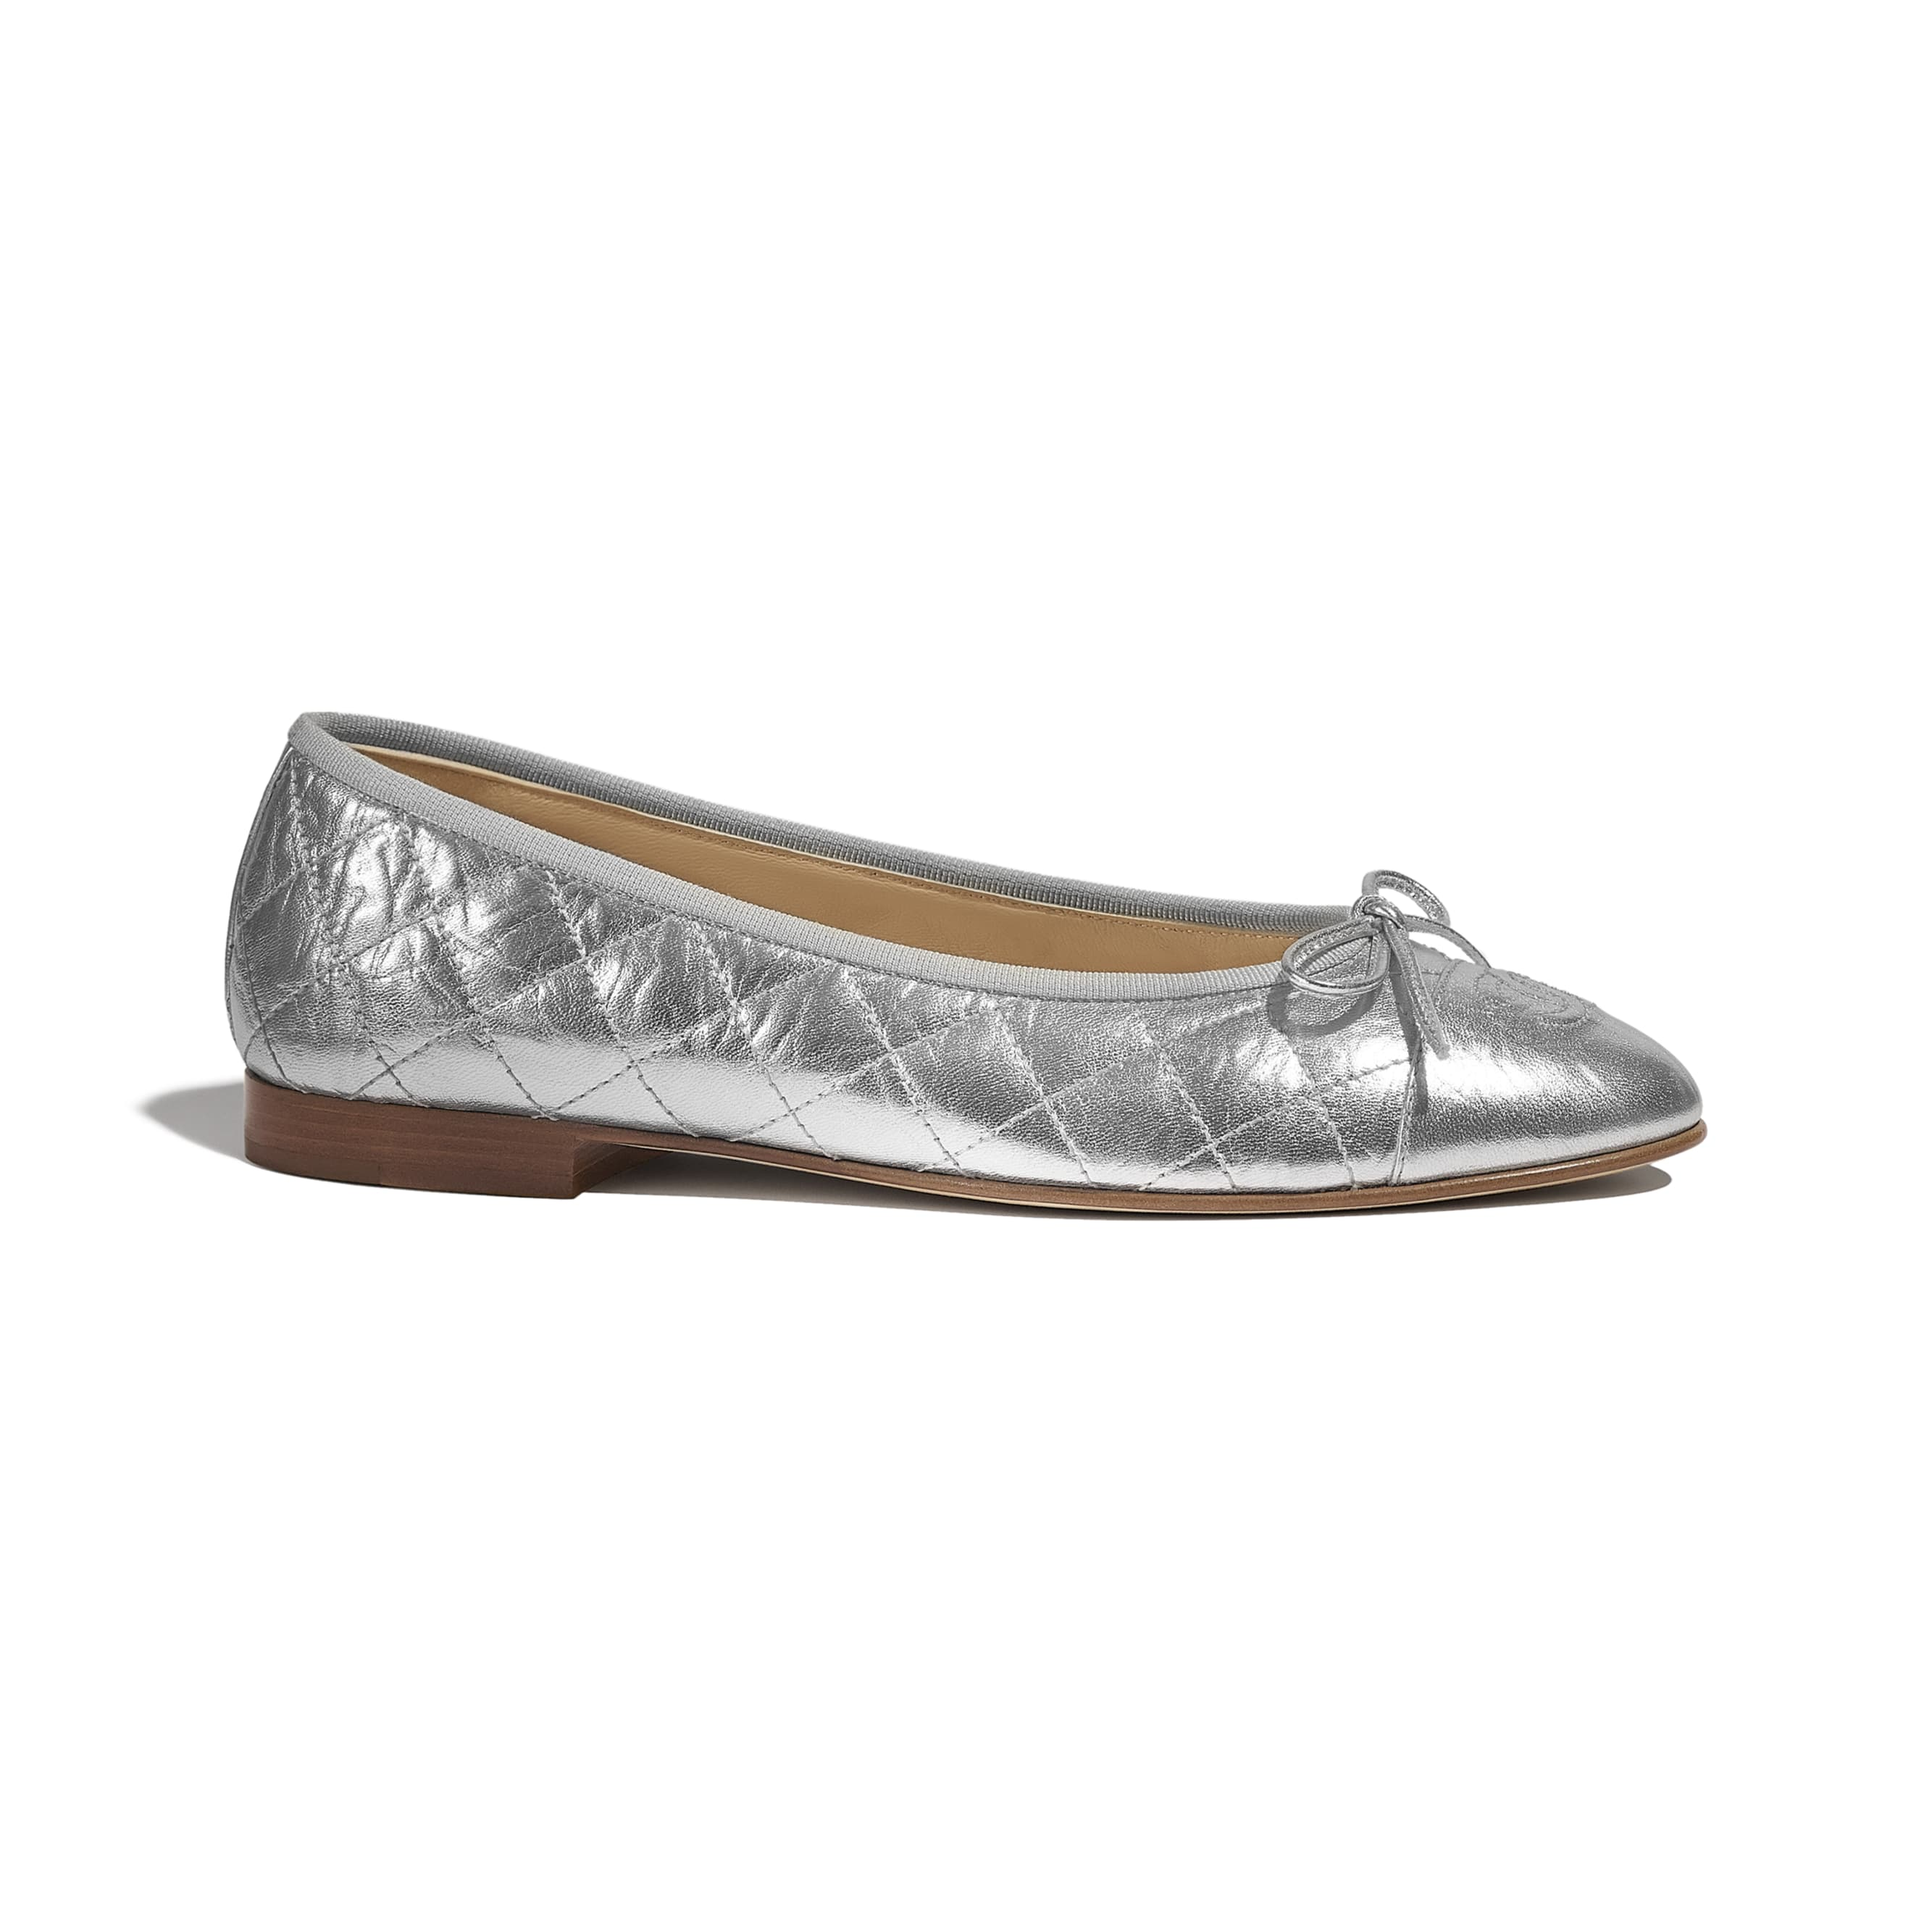 Ballerinas - Silver - Laminated Lambskin - CHANEL - Default view - see standard sized version